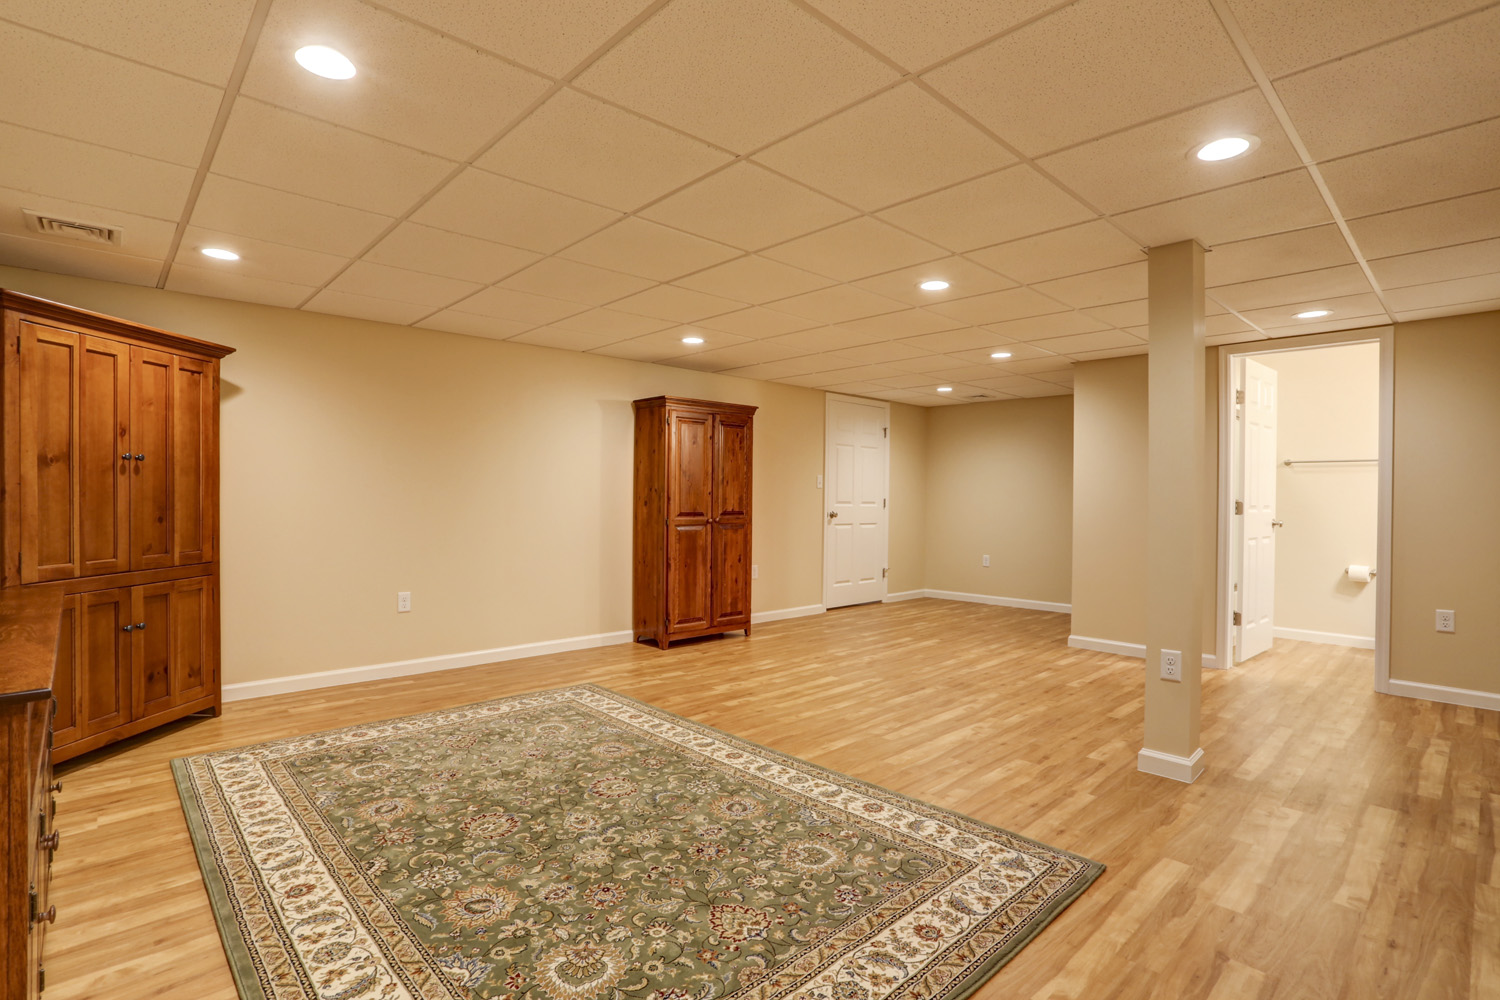 Lititz finished basement remodel with drop ceiling